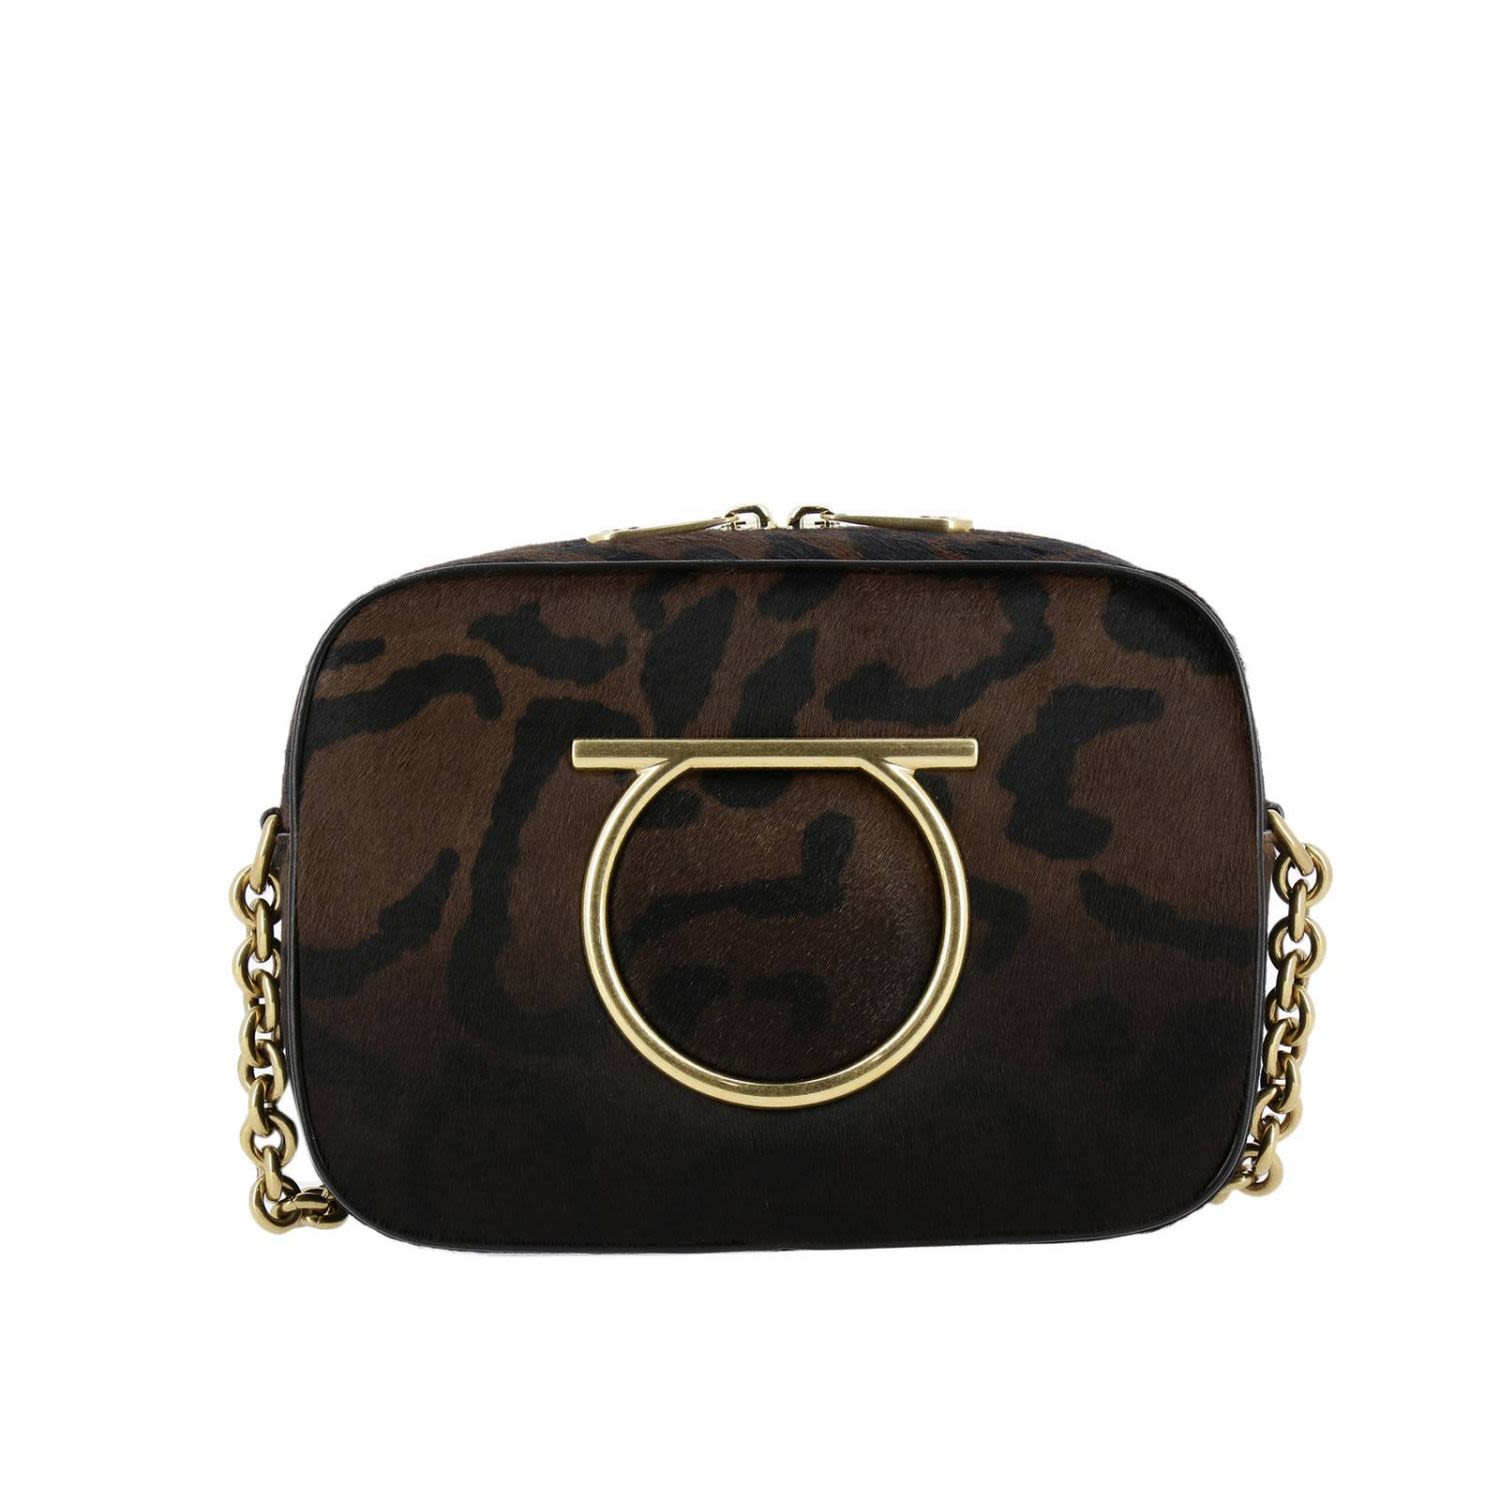 2e17c8178018 Salvatore Ferragamo Mini Bag Shoulder Bag Women Salvatore Ferragamo - brown  ...